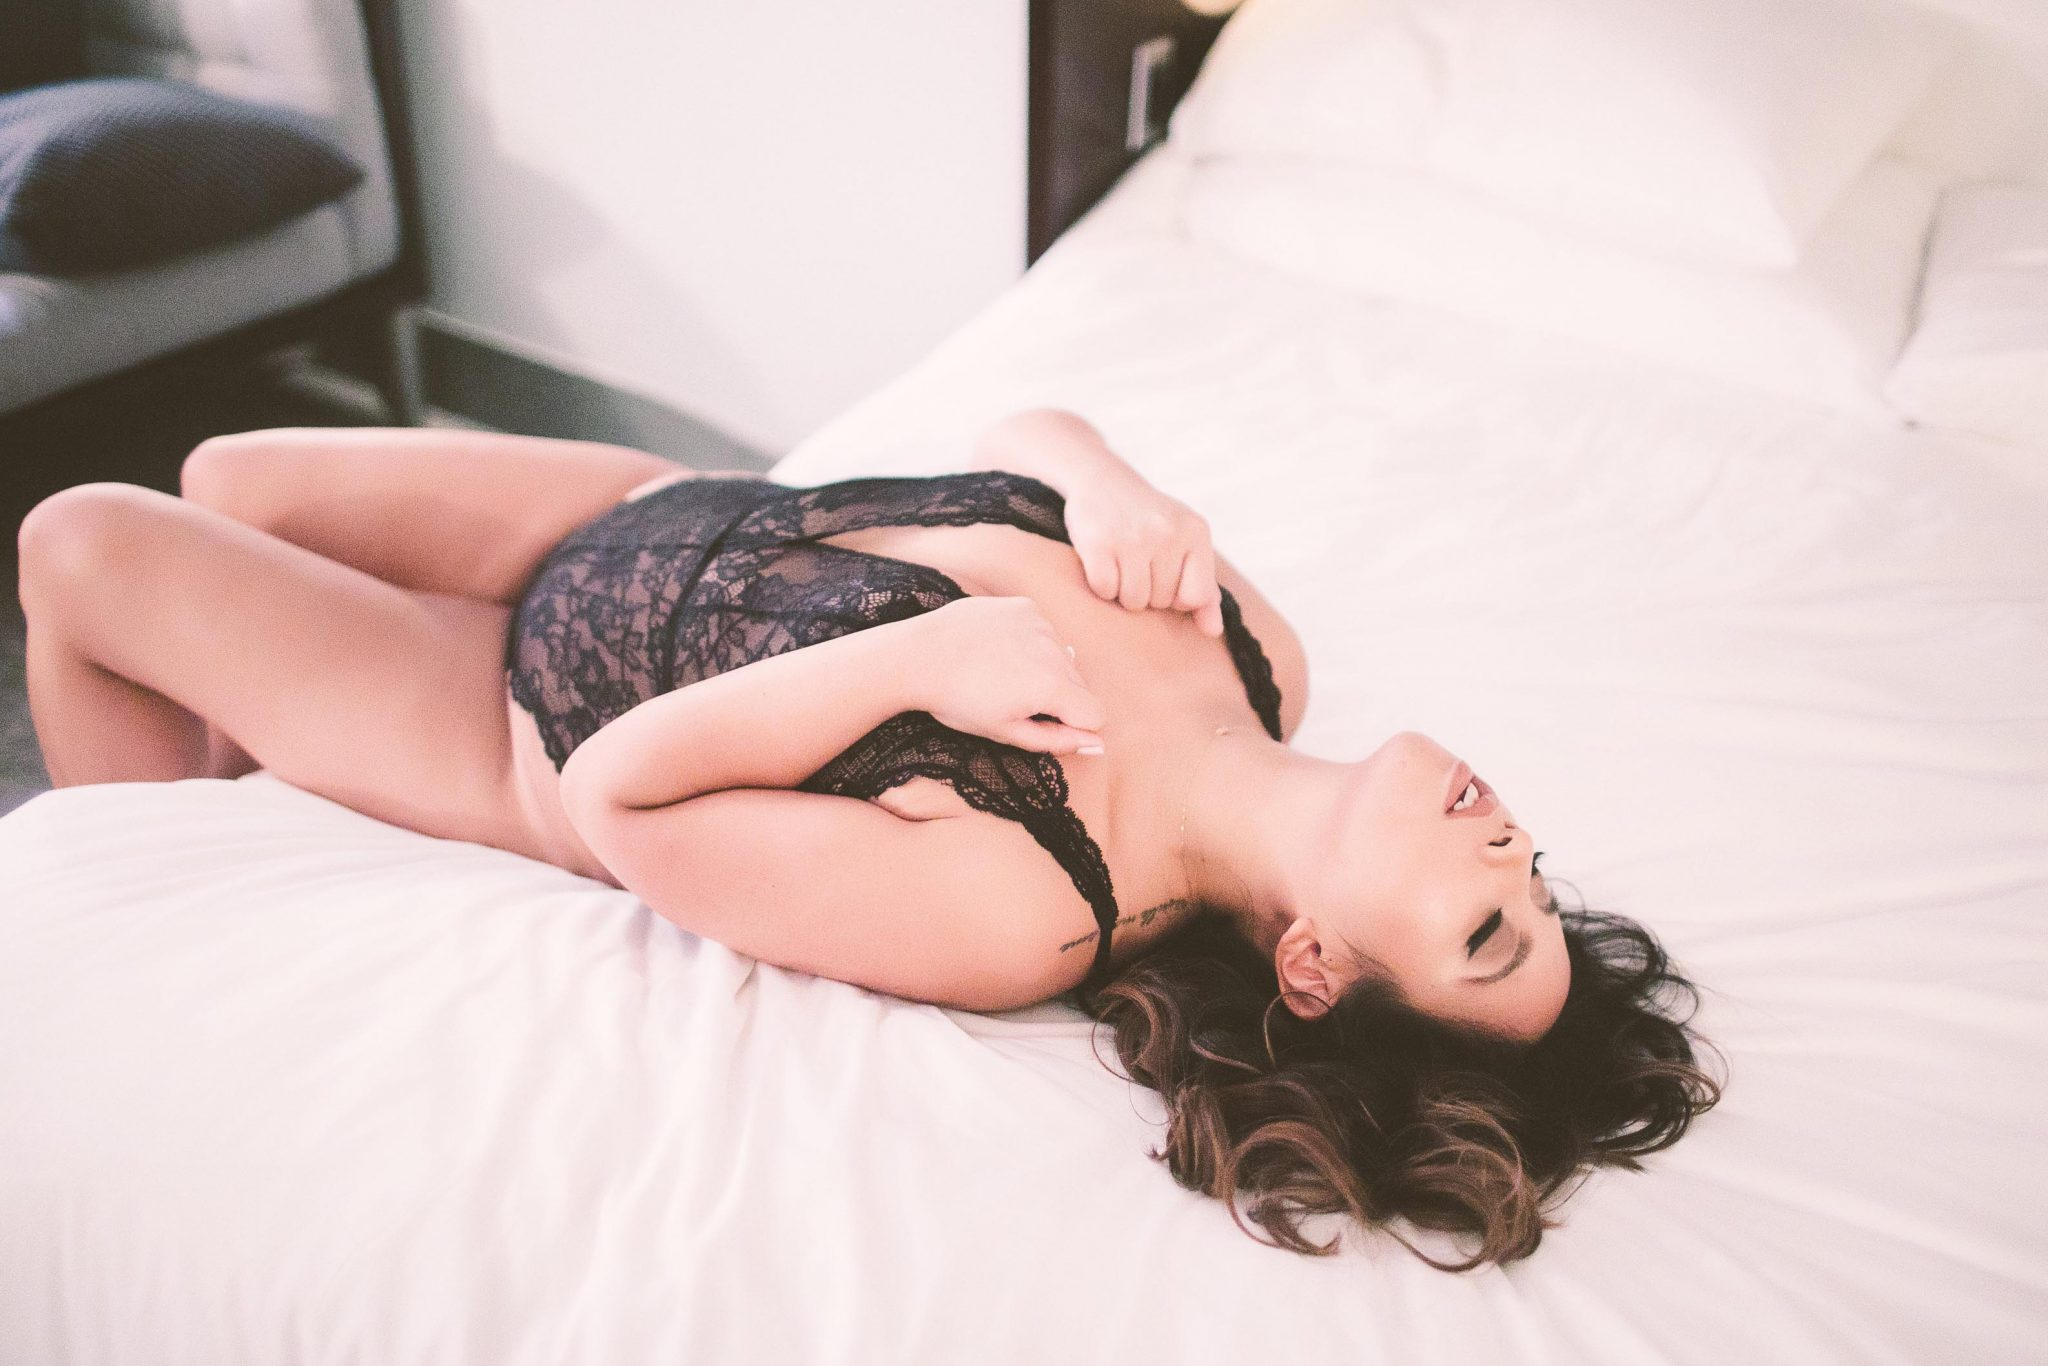 A boudoir model posing on a bed